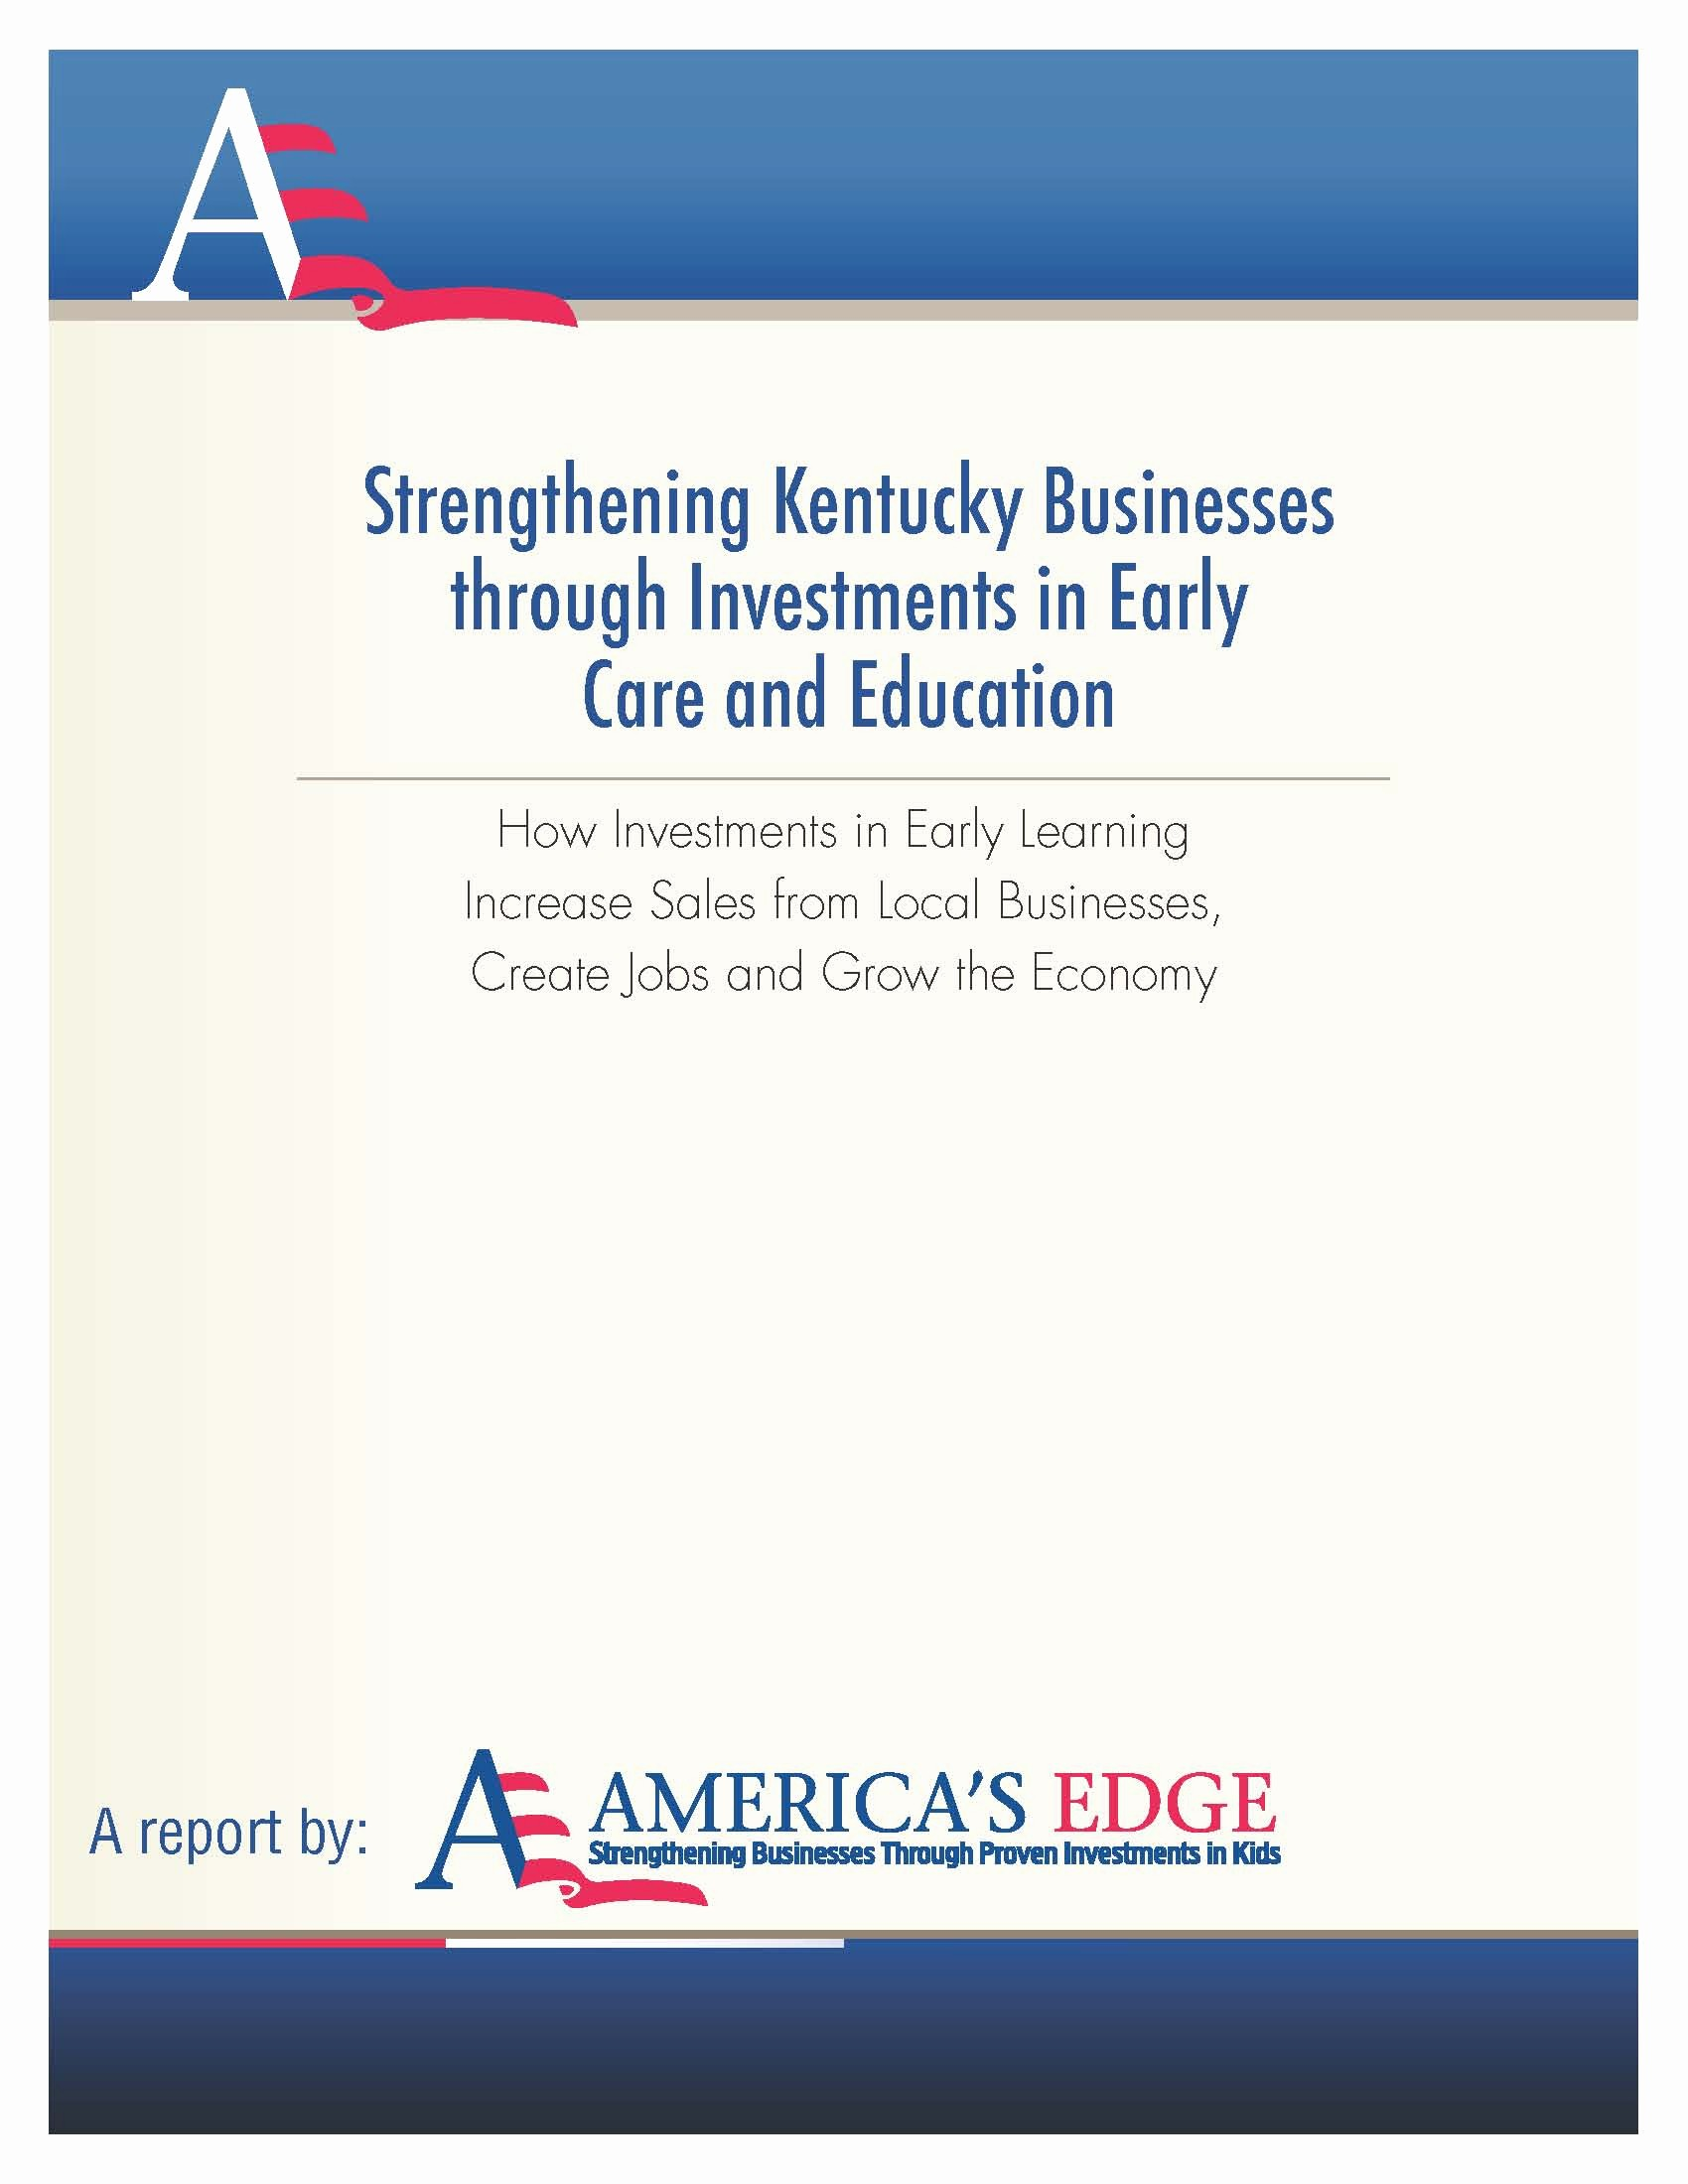 Cover Page for A Report Best Of Cover Page From Ky Early Ed Economic Analysis Report